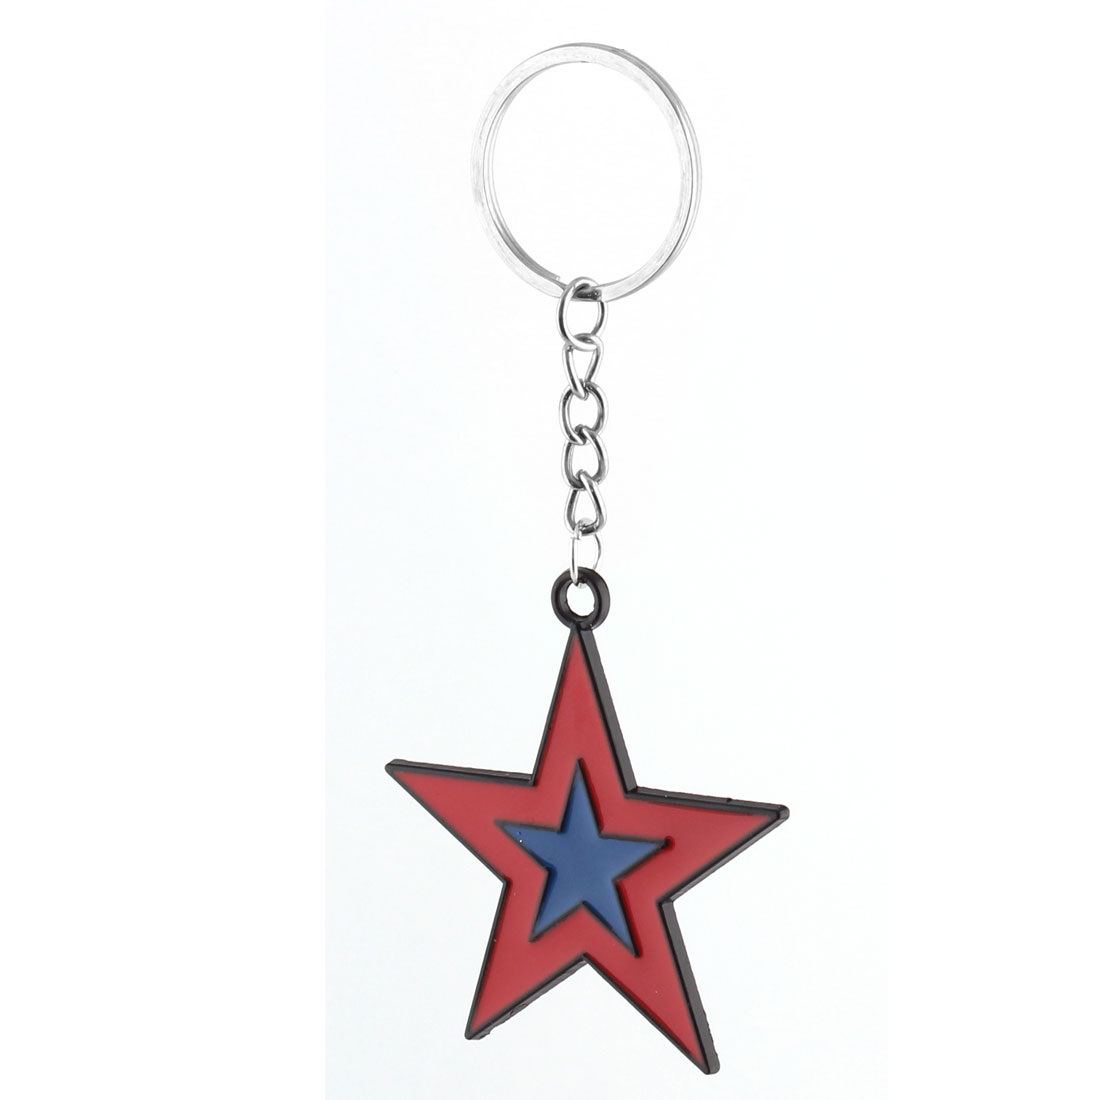 Star Design Pendant Split Ring Key Chain Keyring Handbag Pouch Decoration